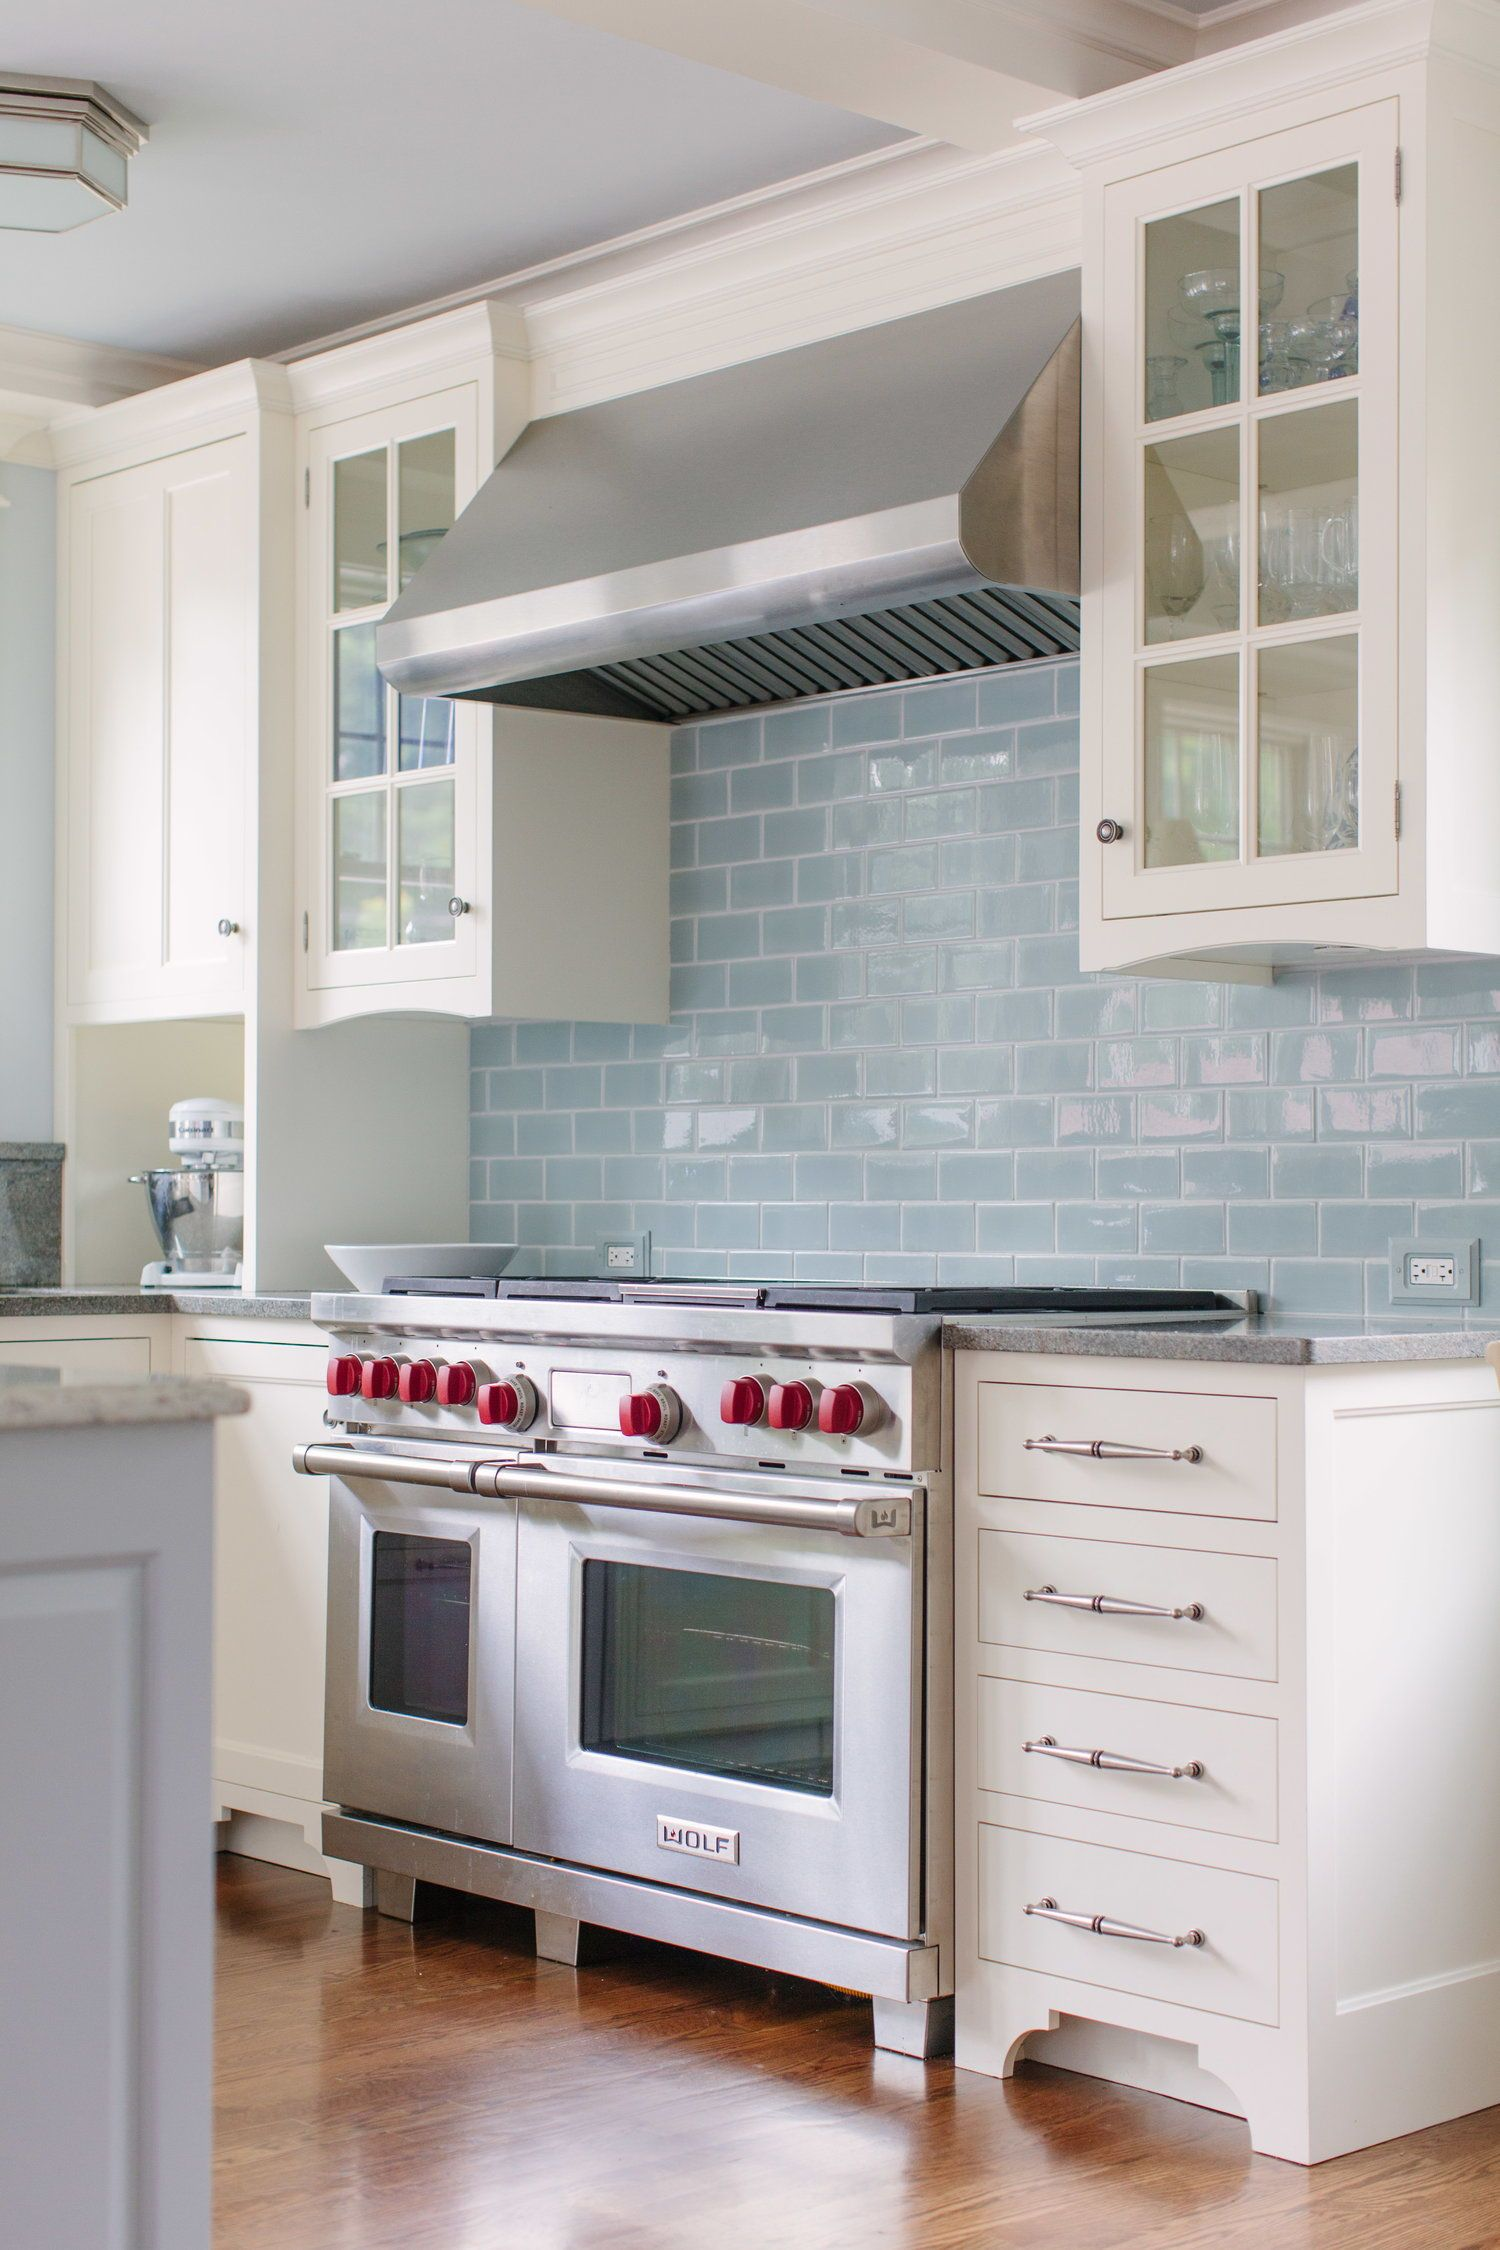 20 Bold Kitchens Backsplashes That Make A Statement Backsplash